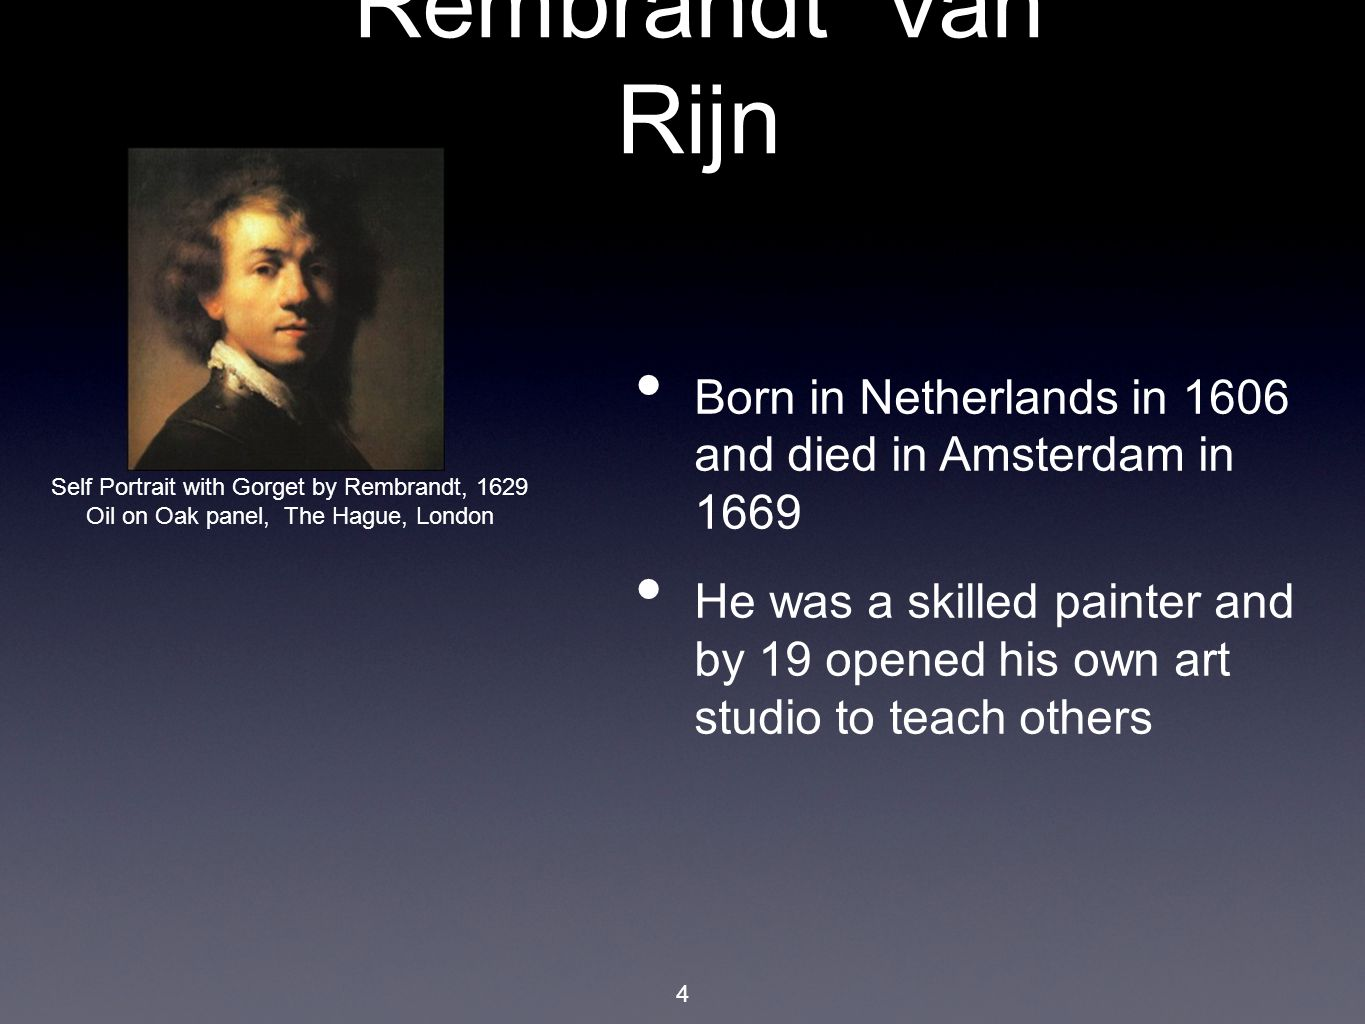 4 Born in Netherlands in 1606 and died in Amsterdam in 1669 He was a skilled painter and by 19 opened his own art studio to teach others Self Portrait with Gorget by Rembrandt, 1629 Oil on Oak panel, The Hague, London Rembrandt Van Rijn